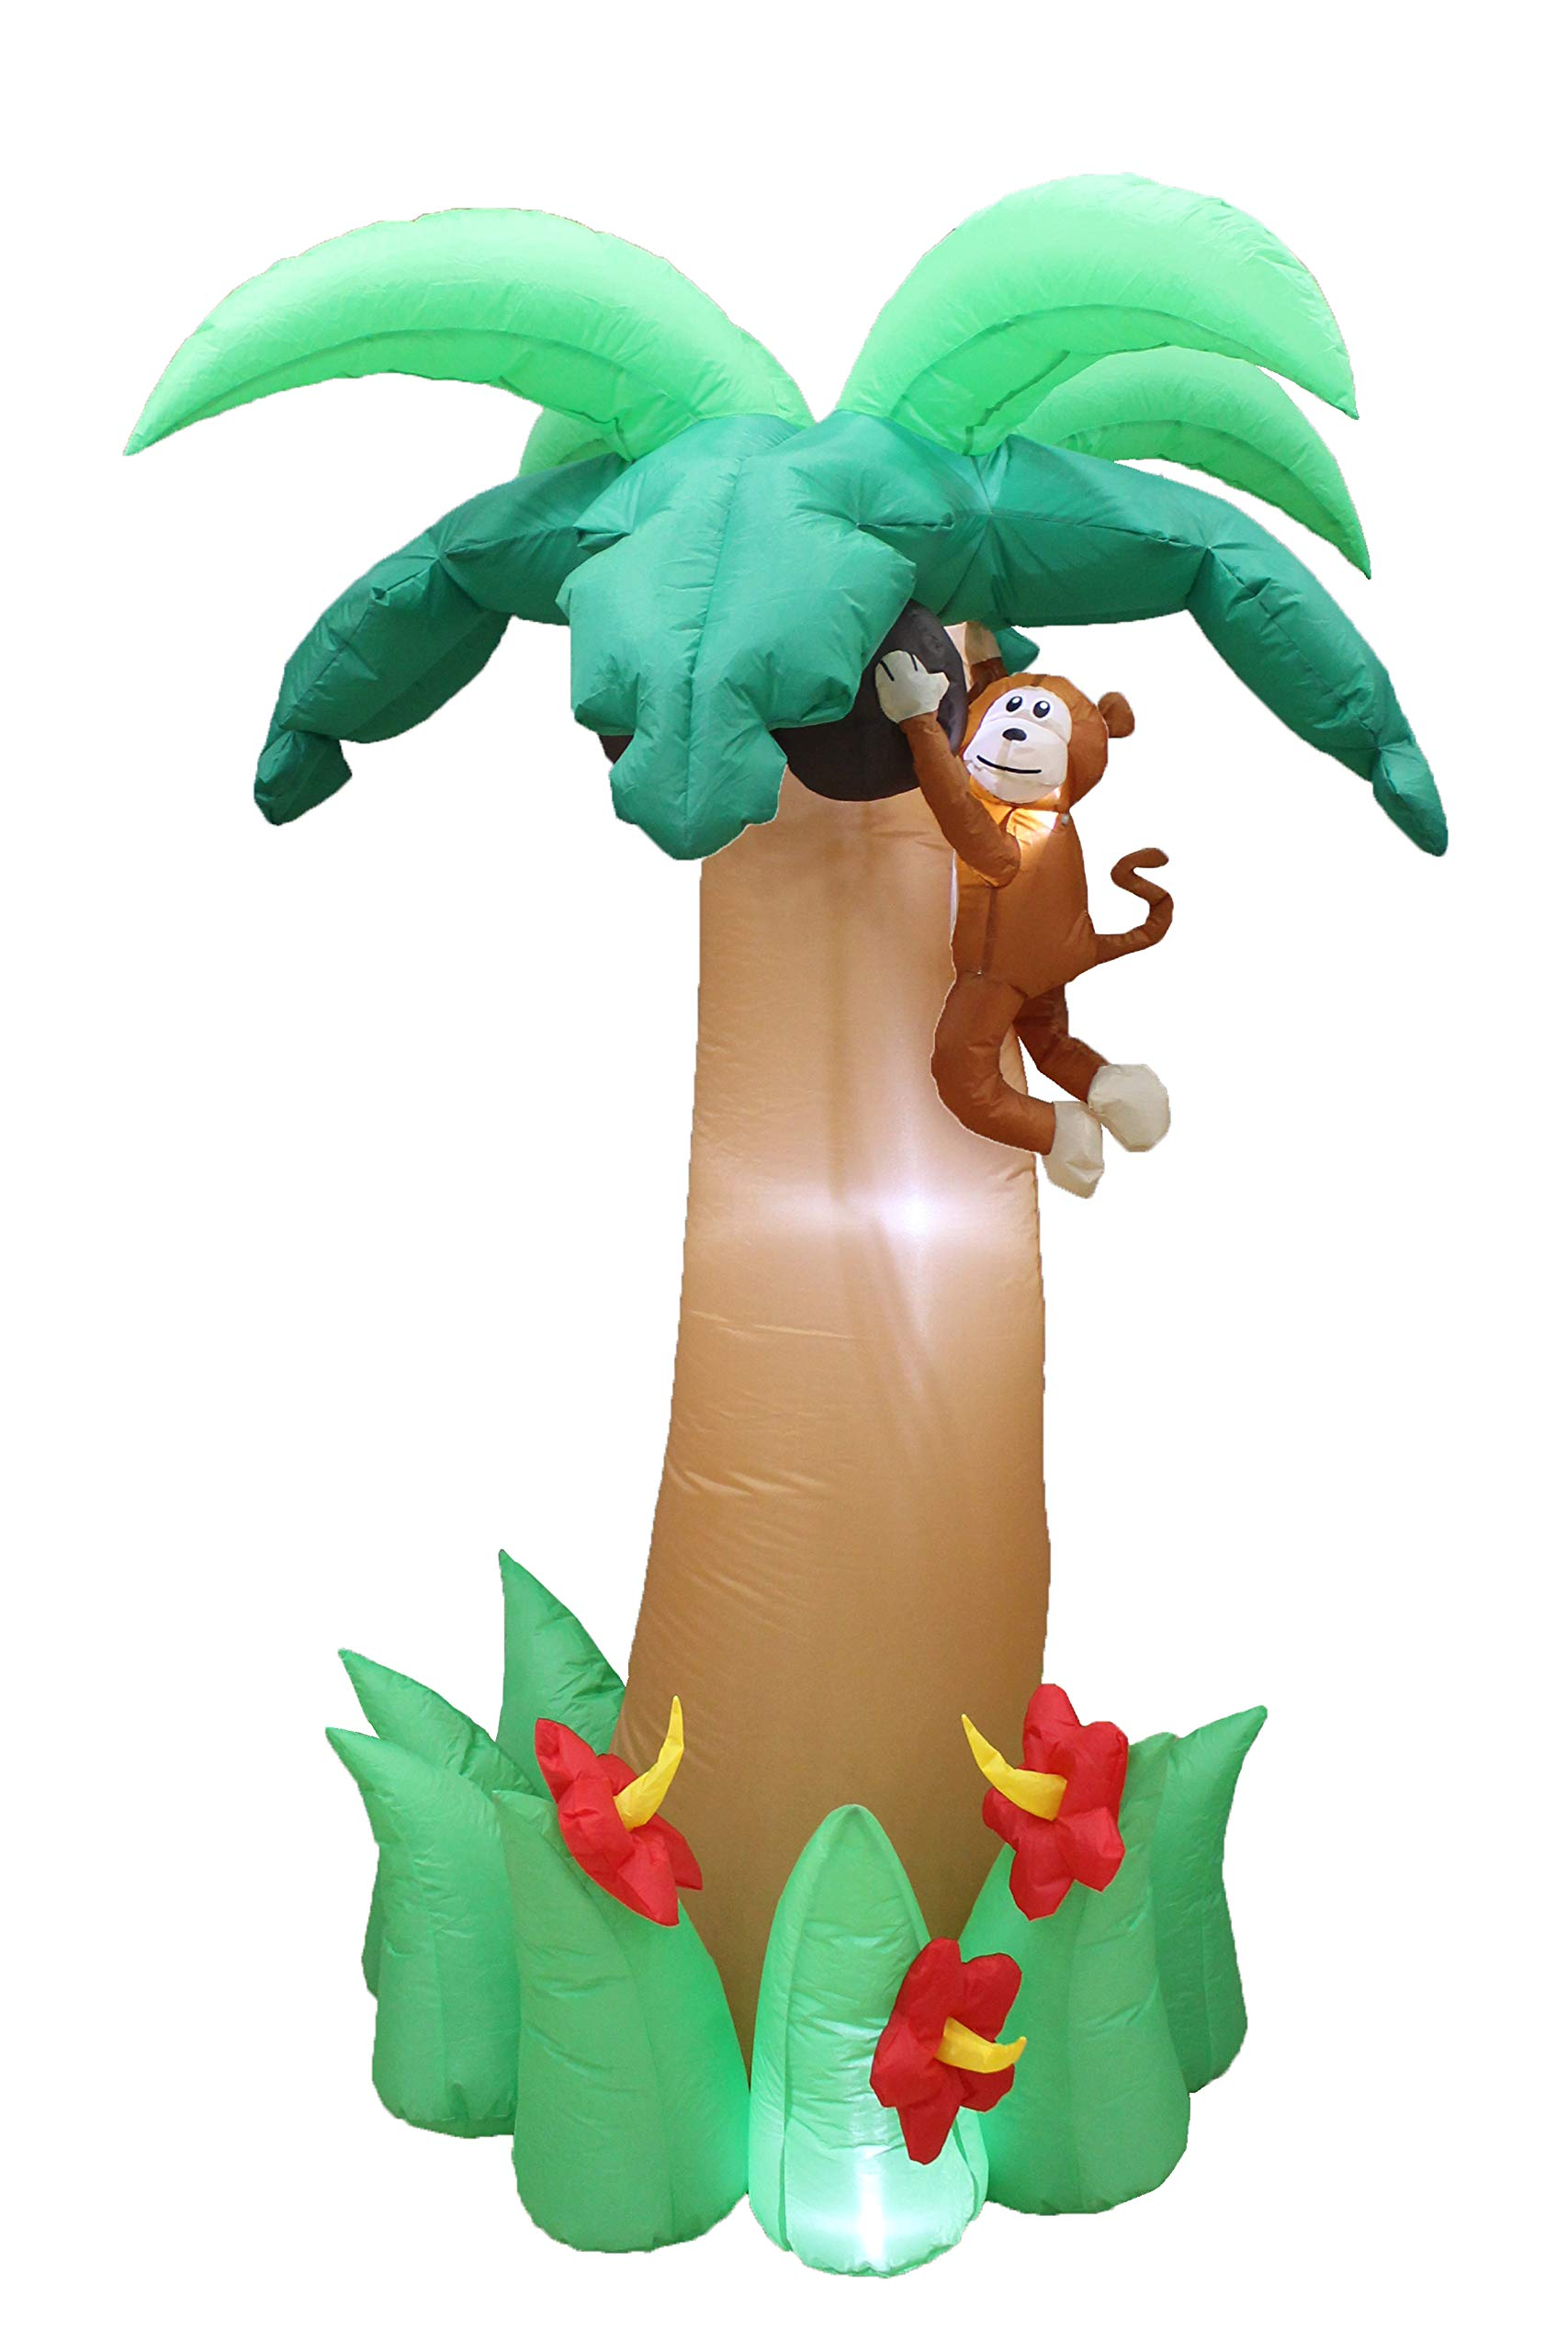 BZB Goods 6 Foot Tall Jumbo Summer Party Inflatable Palm Tree with Monkey Coconut and Flower Yard Blow Up Decoration